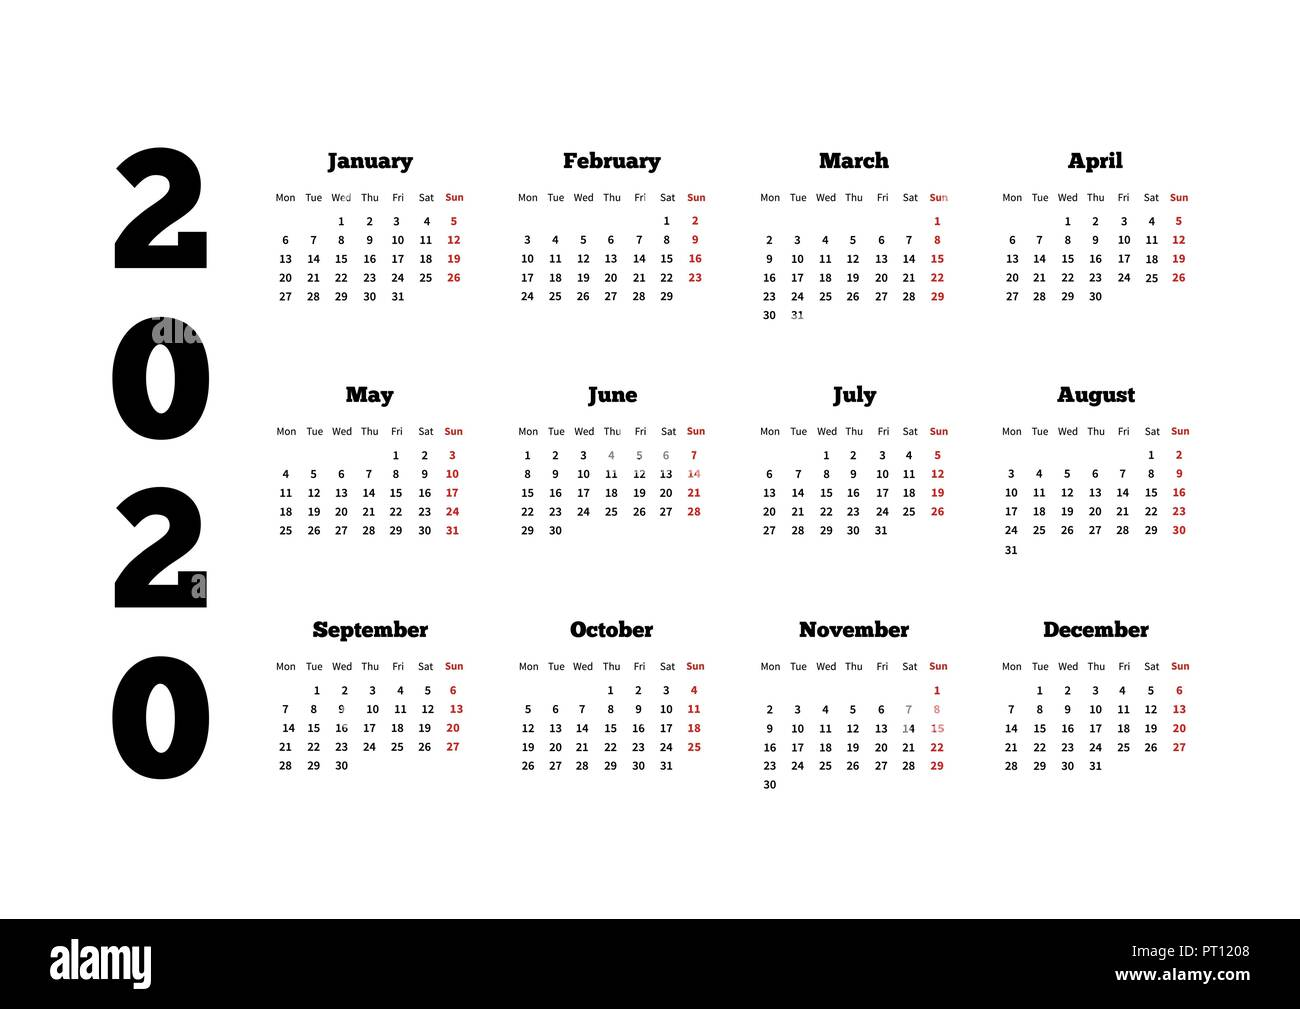 Week By Week Calendar 2020 Calendar on 2020 year with week starting from monday, A4 sheet